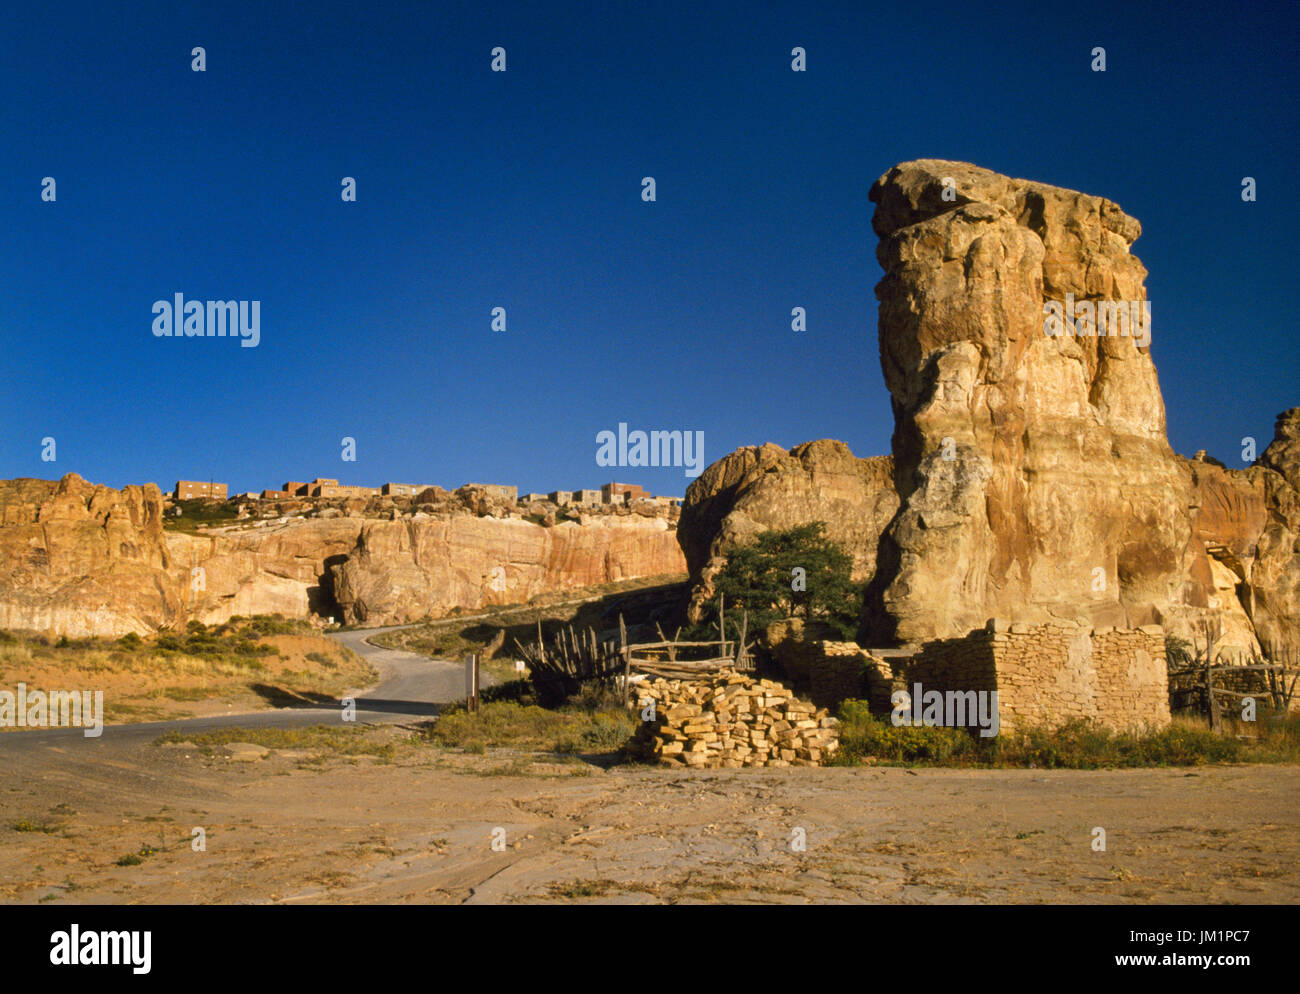 Acoma Pueblo, Grants, New Mexico, USA; rock colums beside modern access road to mesa top and pueblo. Village visible on top of mesa. - Stock Image